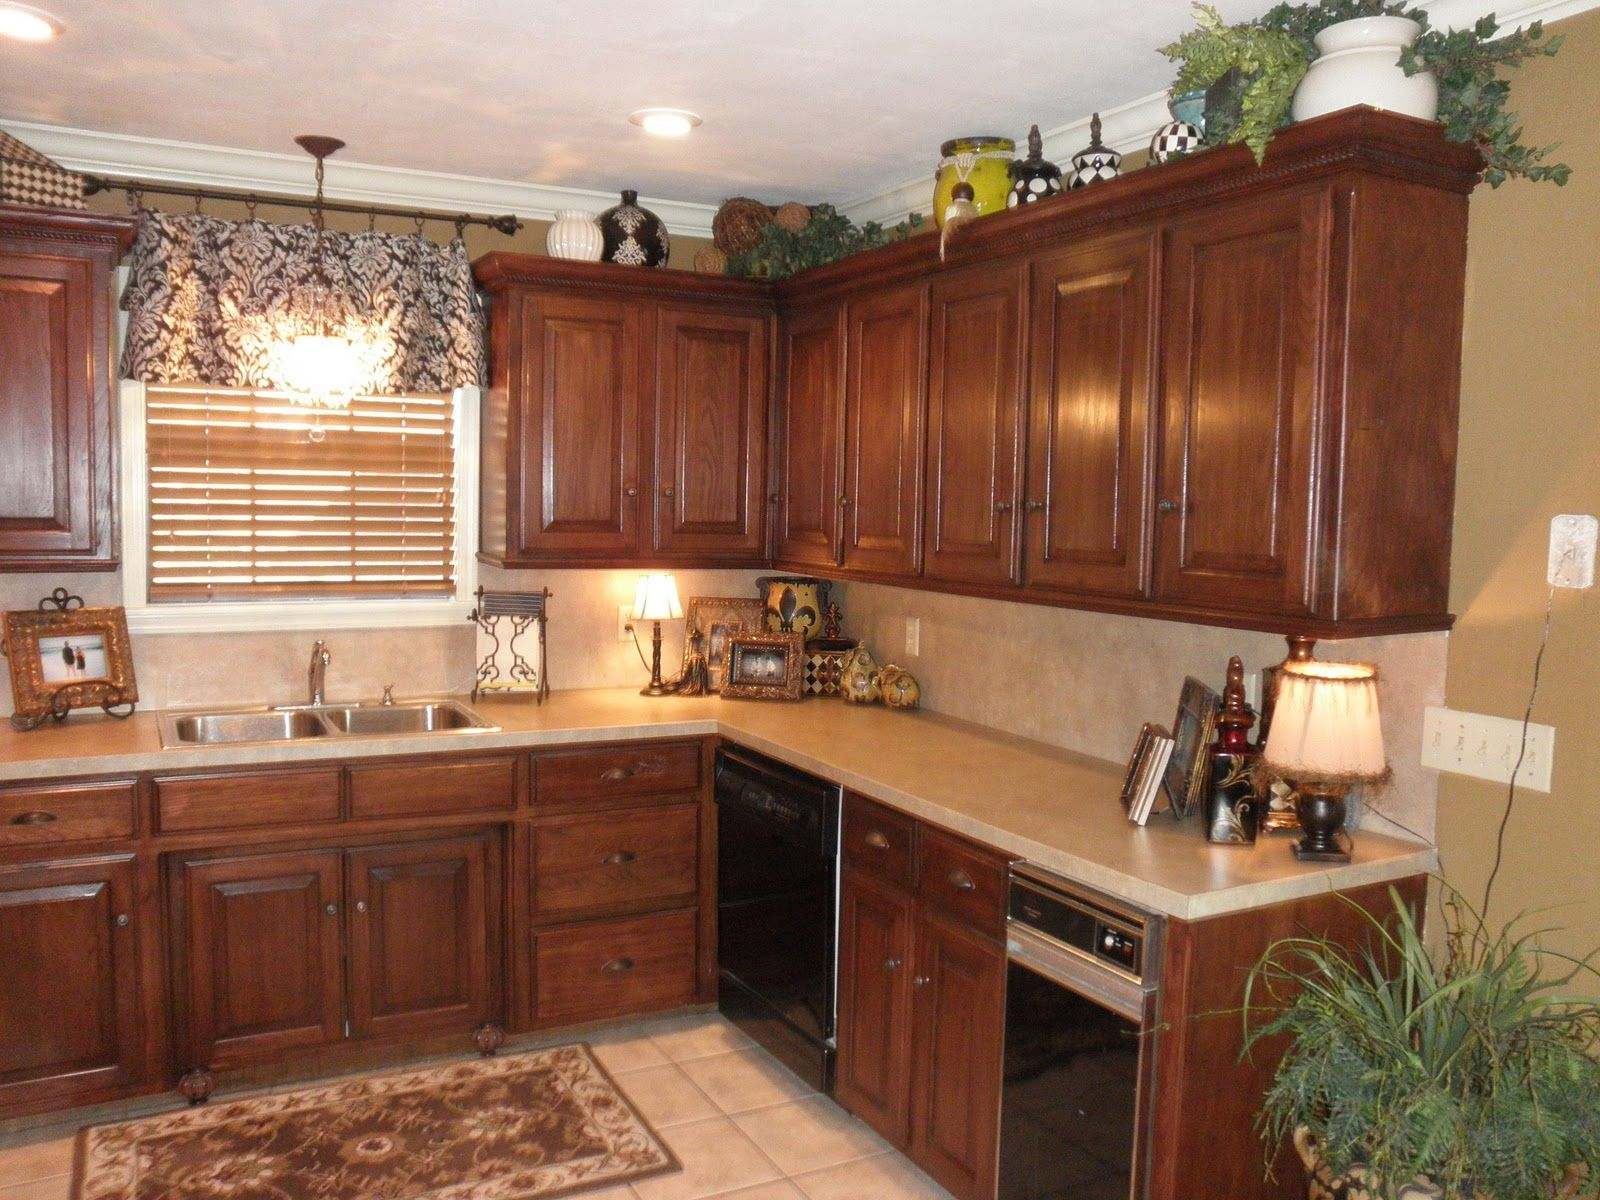 kitchen cabinet trim for now i no new cabinet tops kitchen cabinets decor cabinet on kitchen cabinets trim id=98197